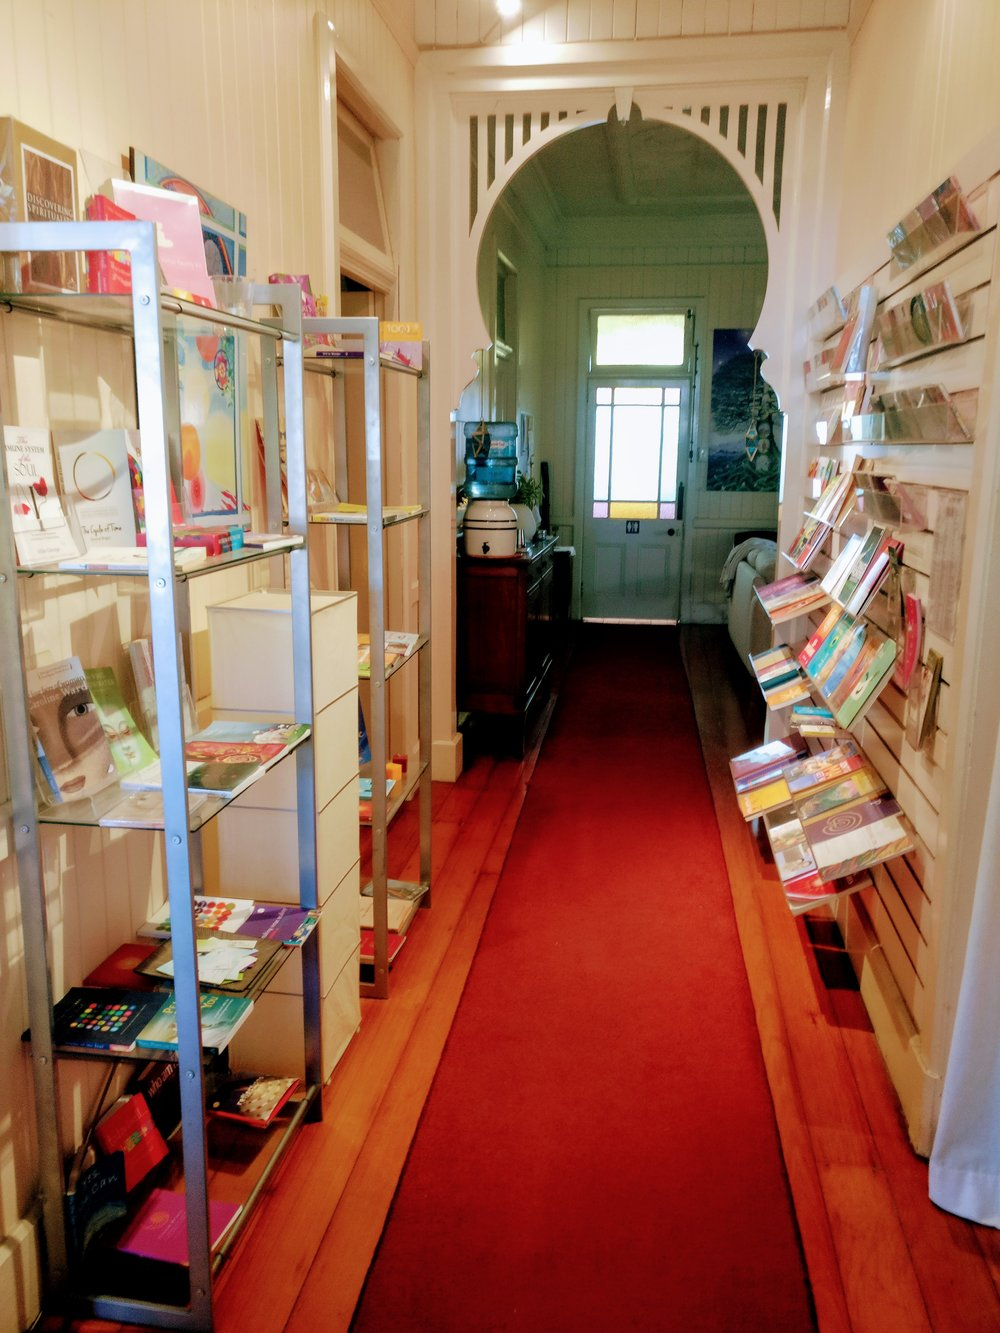 Our book shop